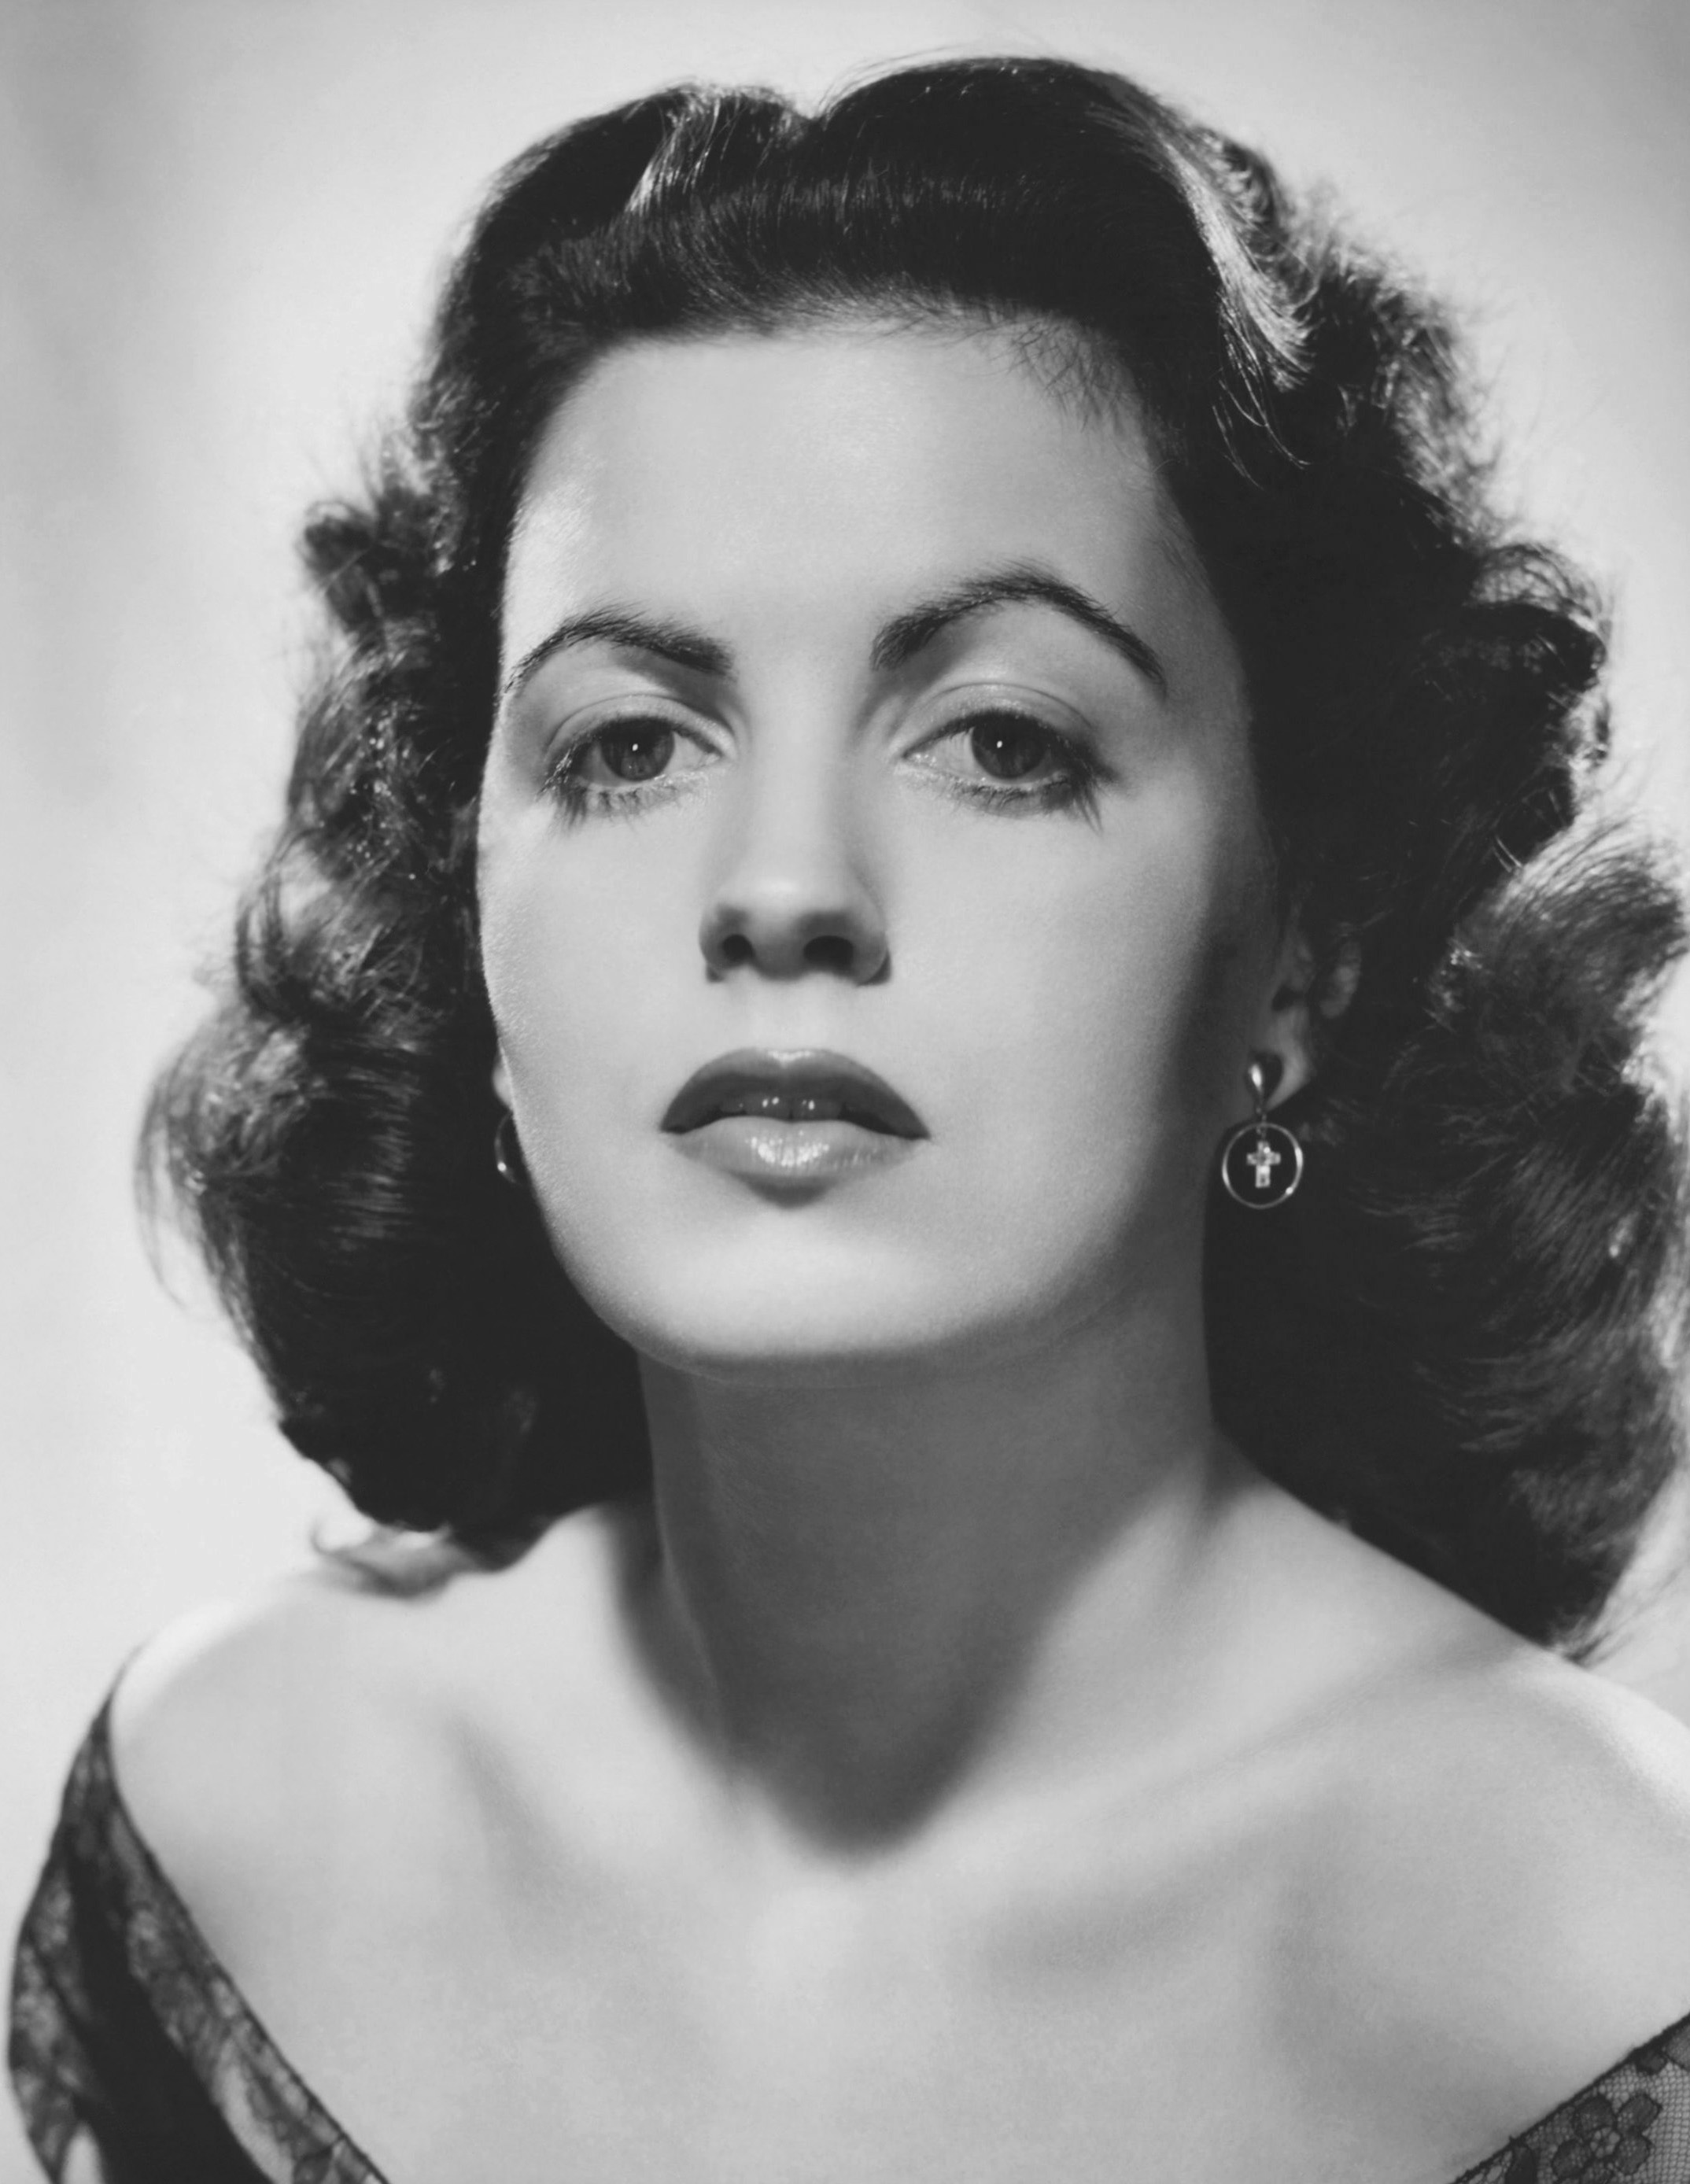 Discussion on this topic: Alicia Rickter, faith-domergue/